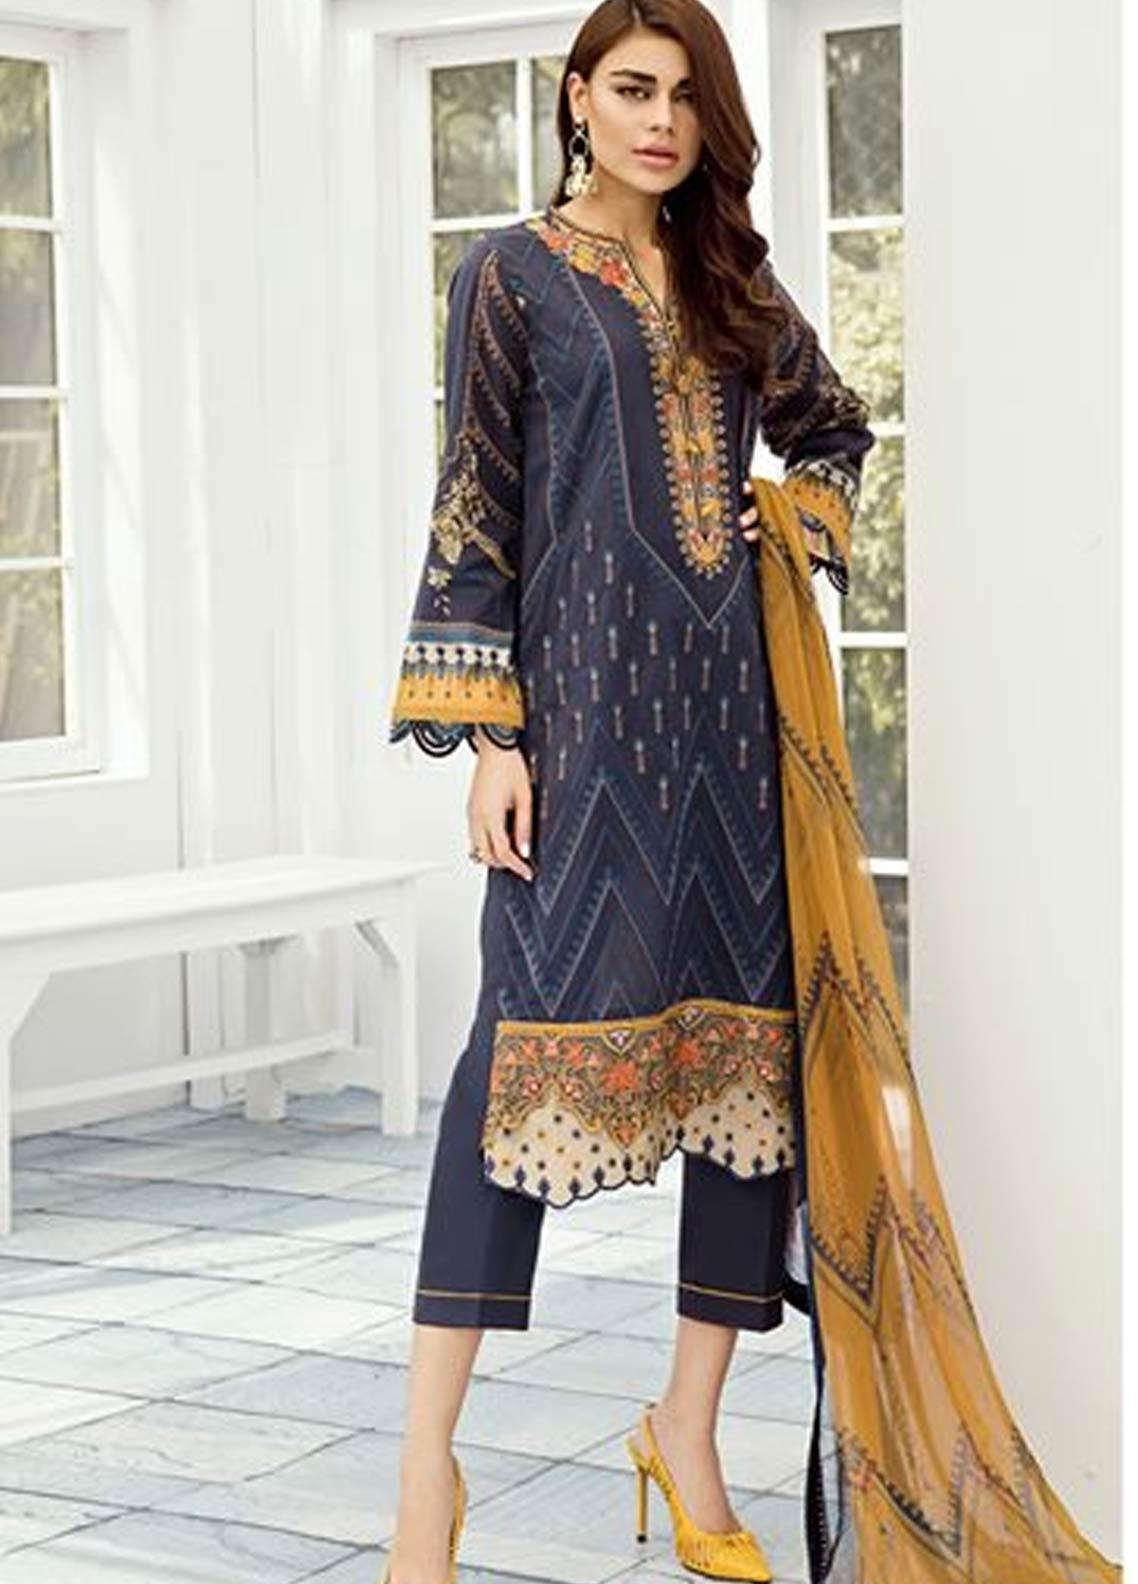 Baroque Embroidered Lawn Unstitched 3 Piece Suit FC19-L2 04 BELLEFLOWER - Mid Summer Collection